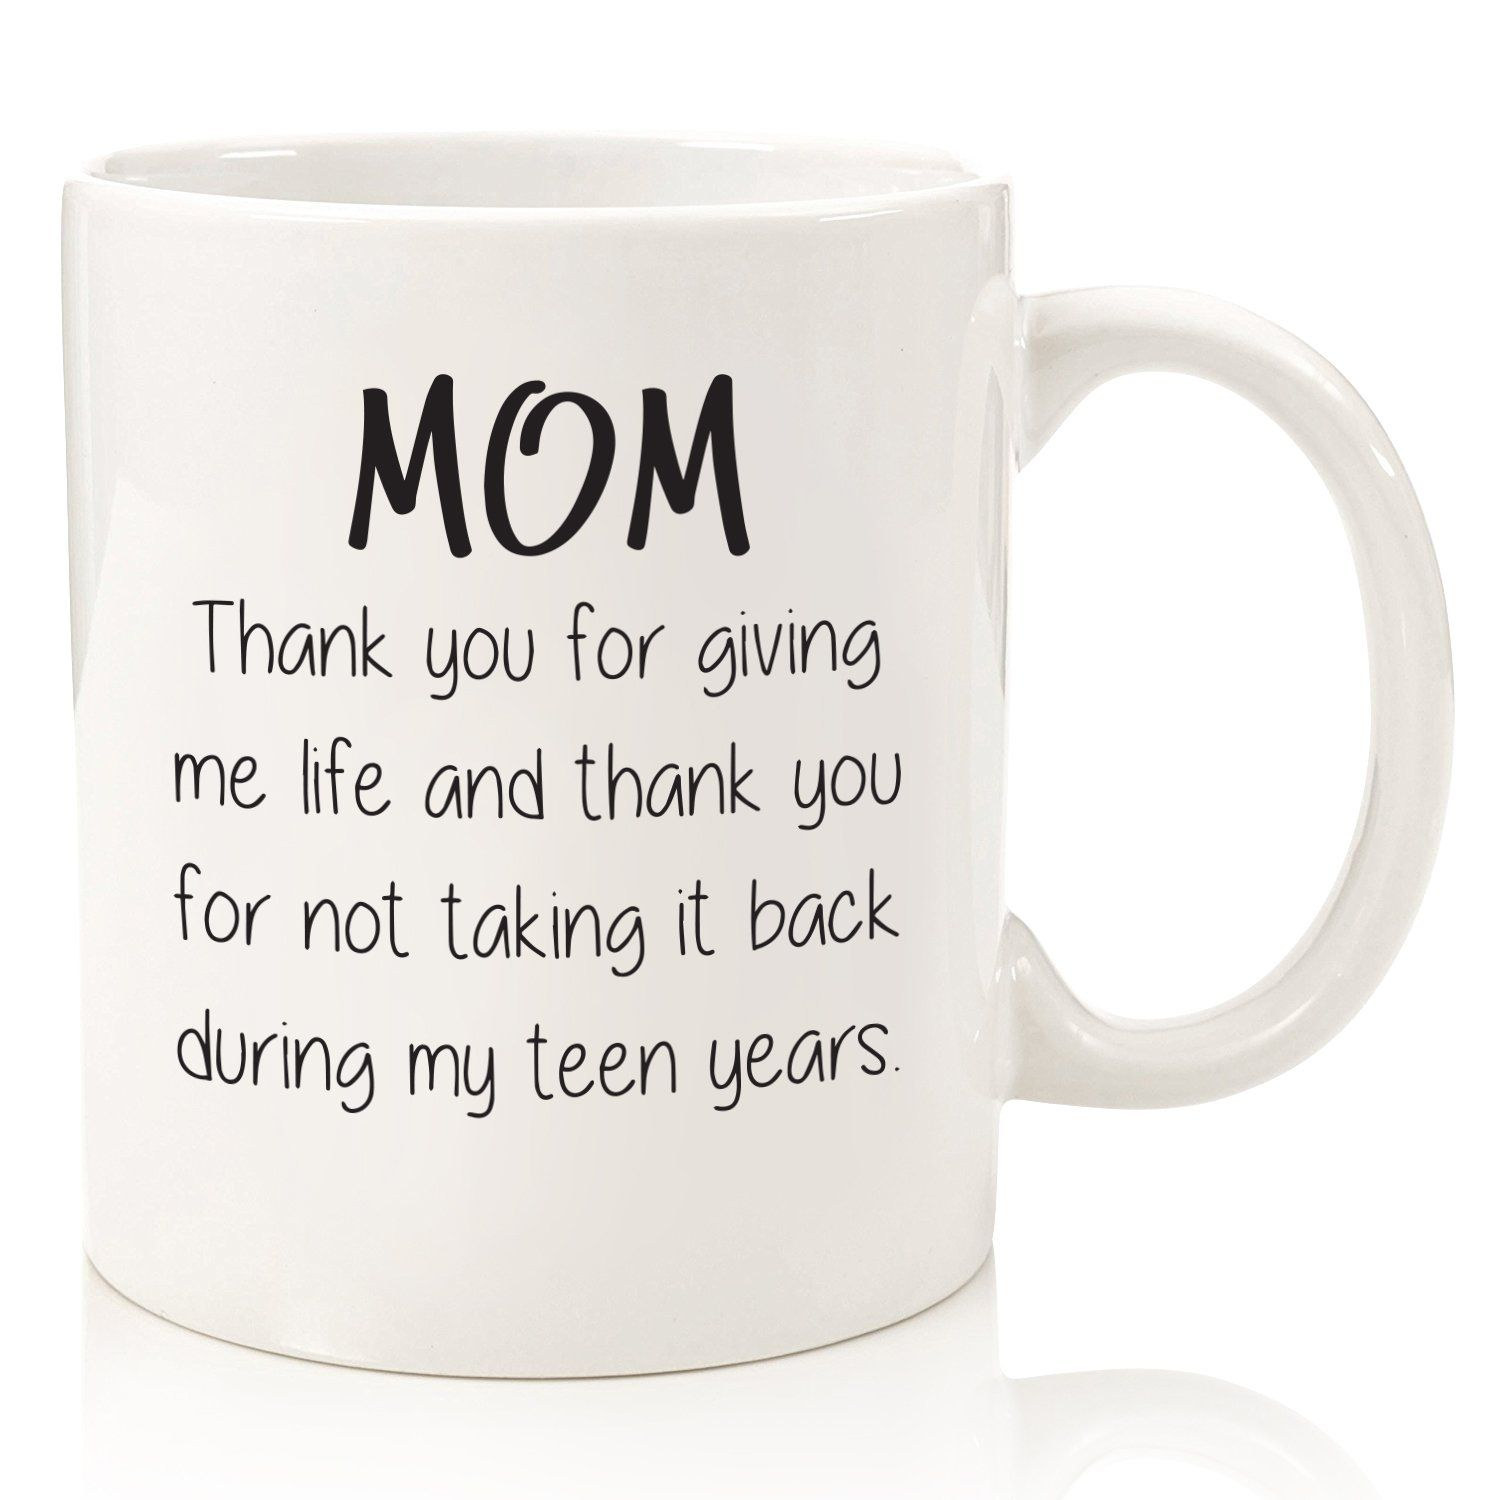 Mom Mug Best Christmas Gifts for Mom, Women Unique